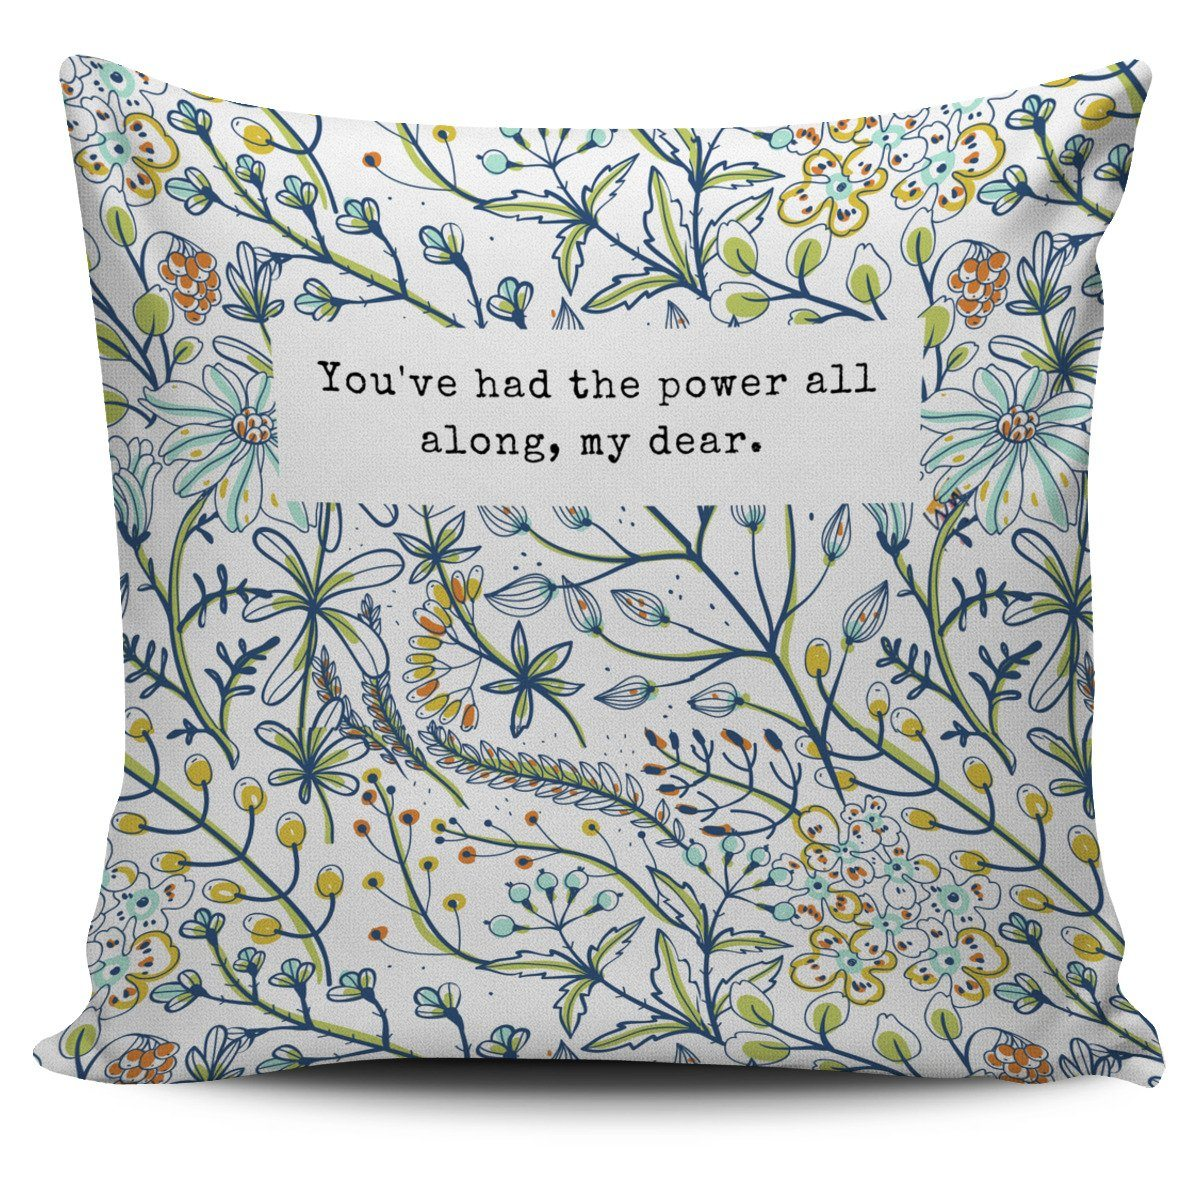 """You've had the power all along, my dear."" Pillow Cover"